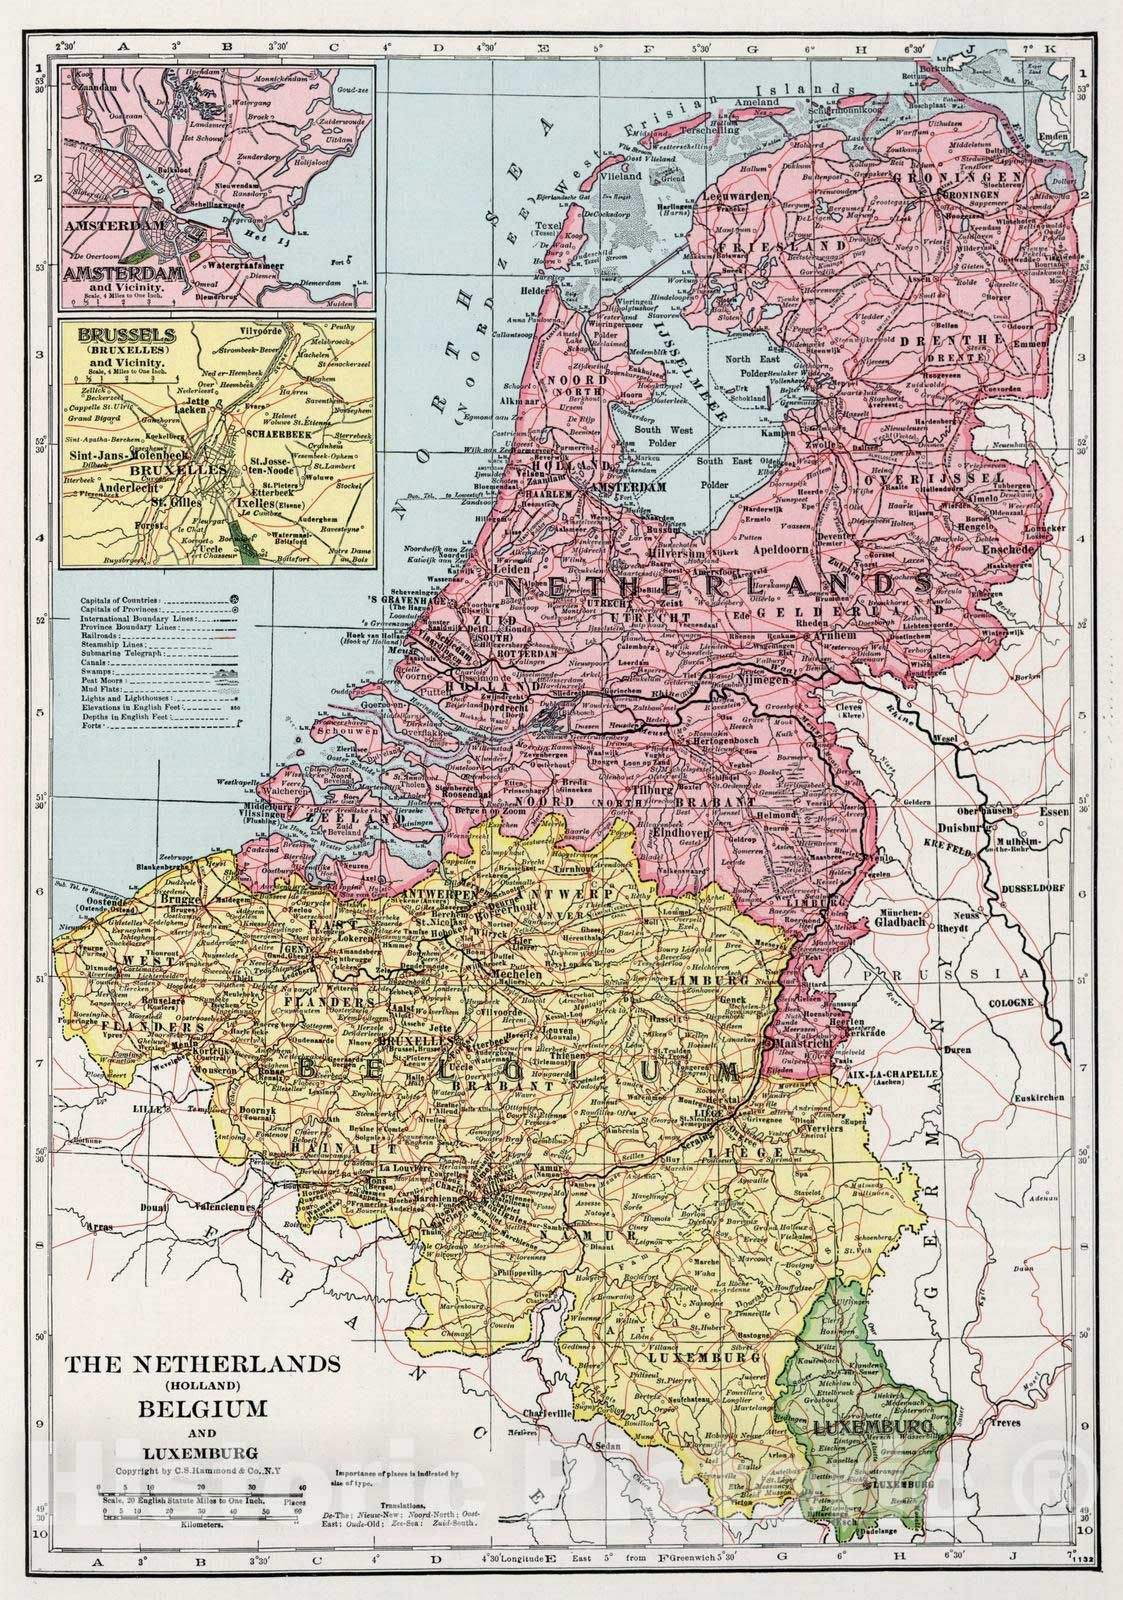 <p>1948 Netherlands, Belgium, and Luxemburg. </p>